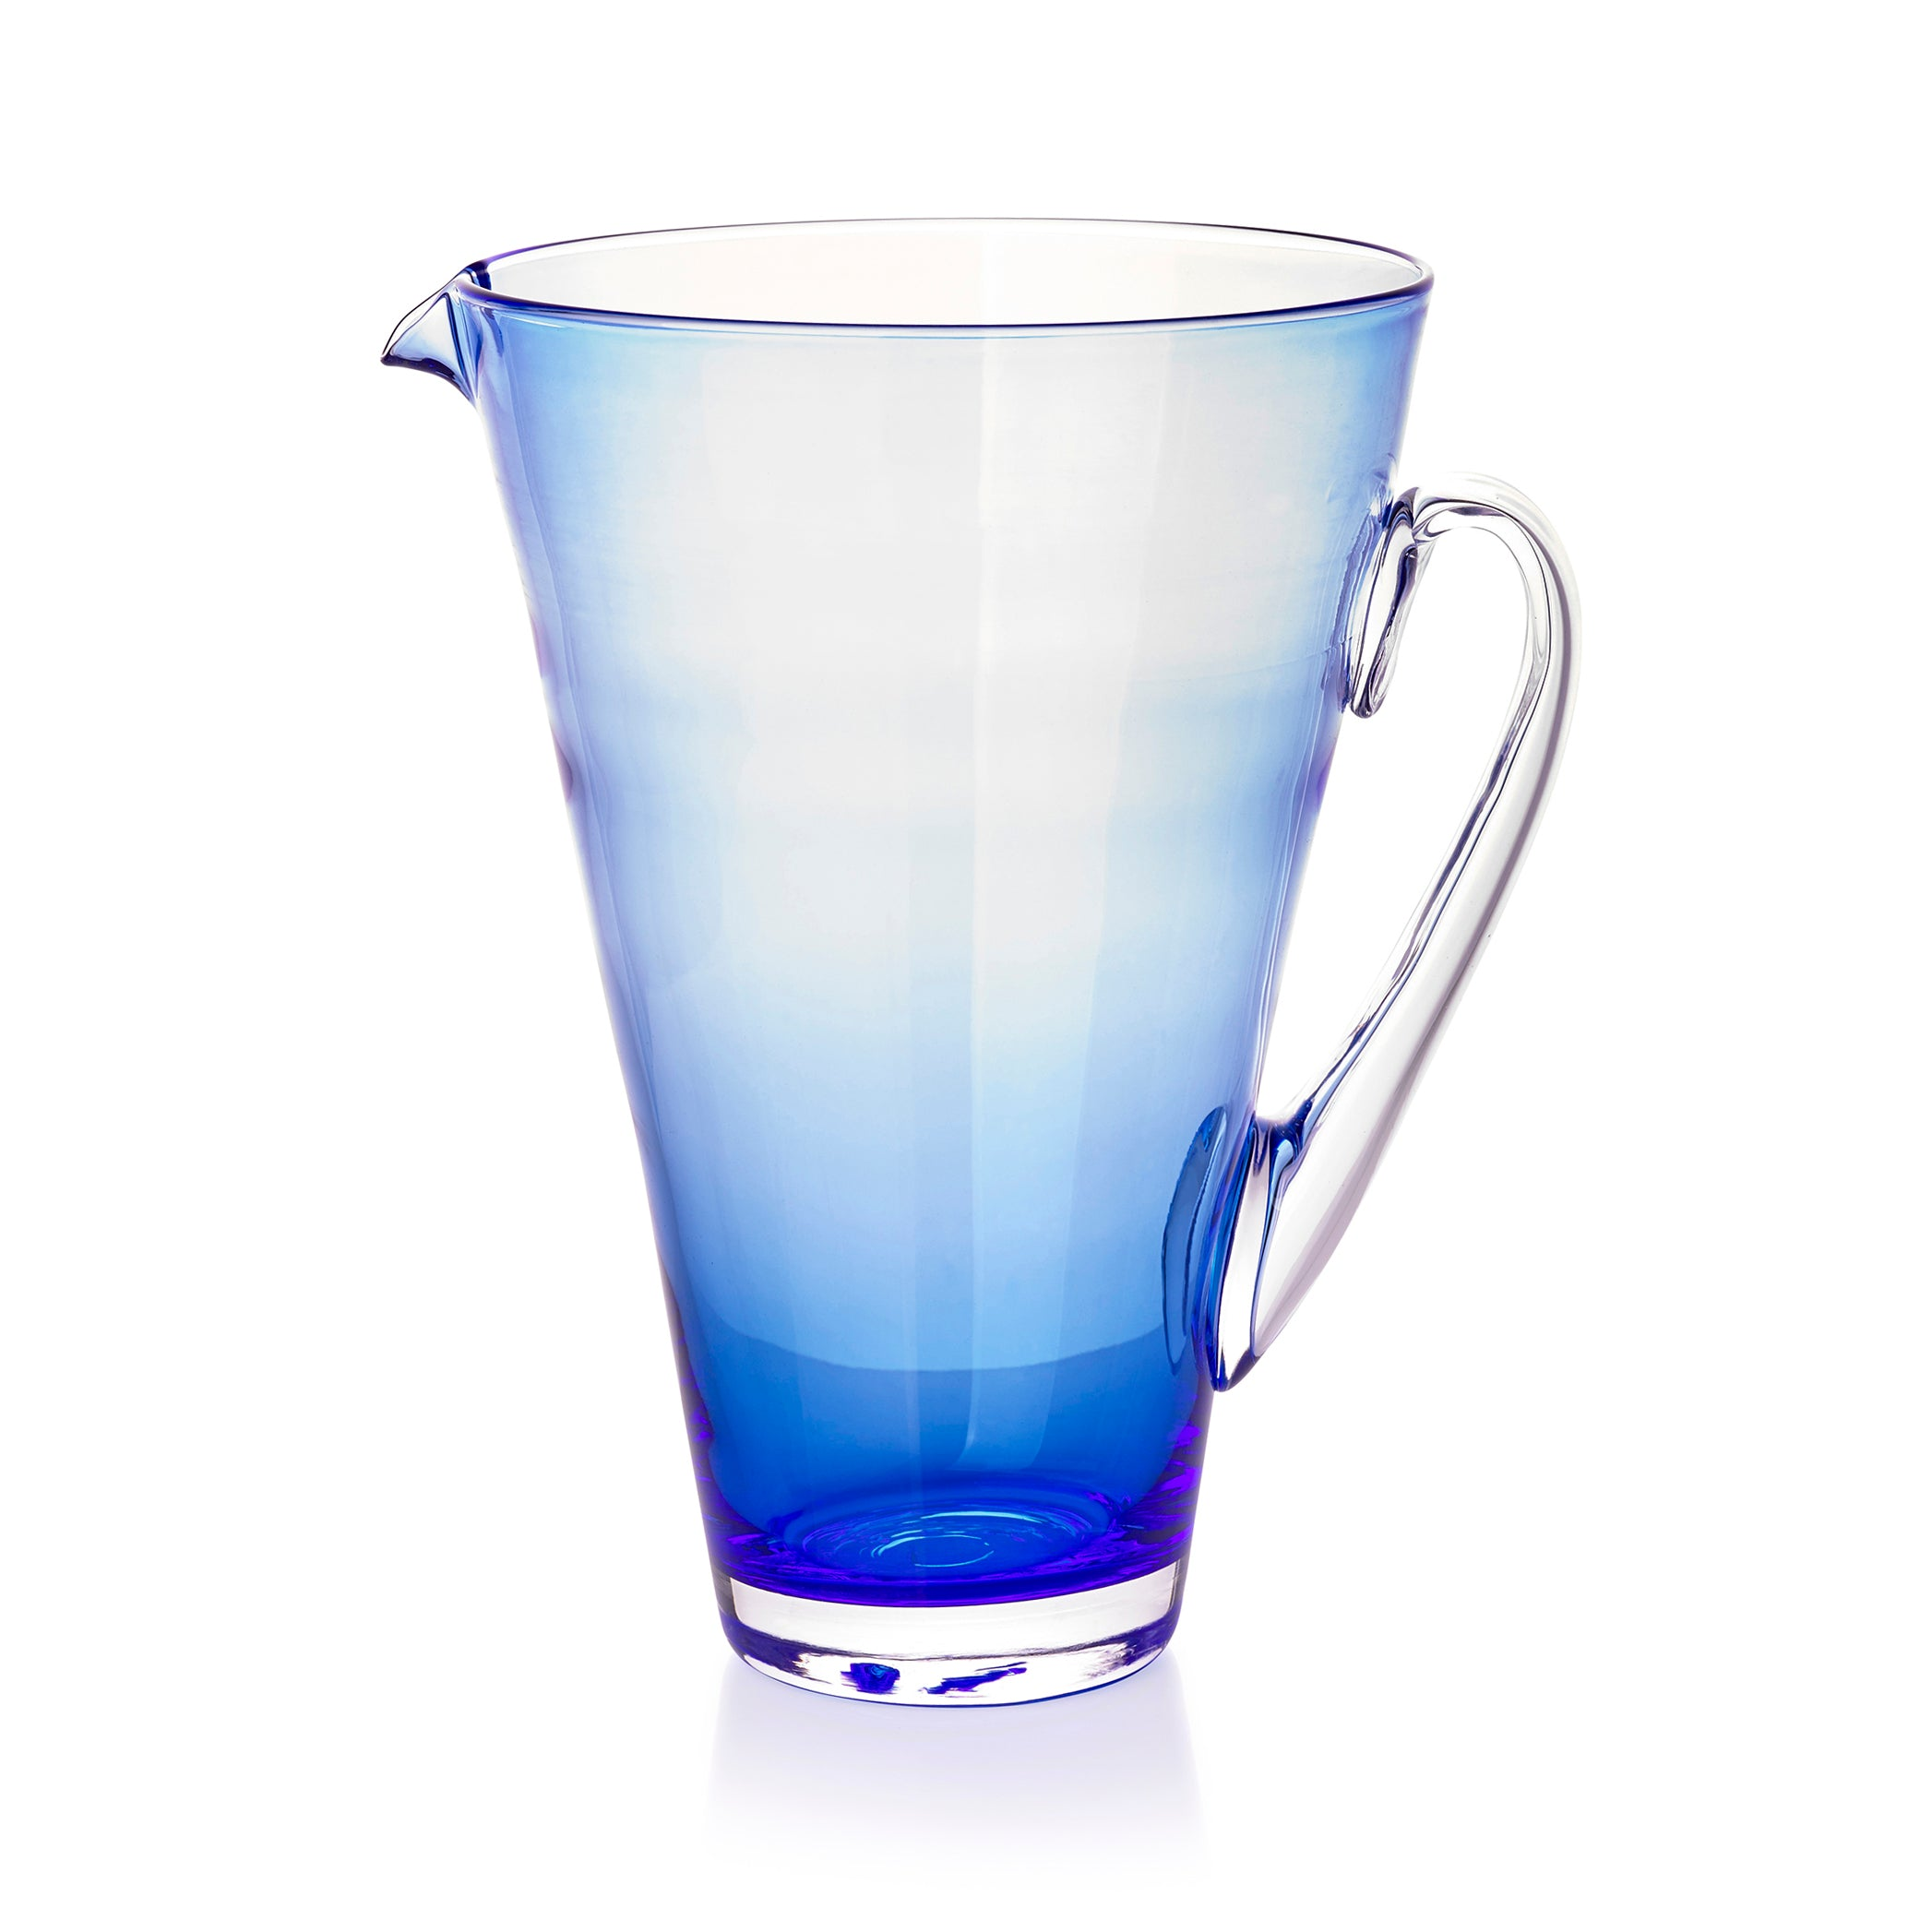 Handblown Glass Clair Jug in Midnight Blue